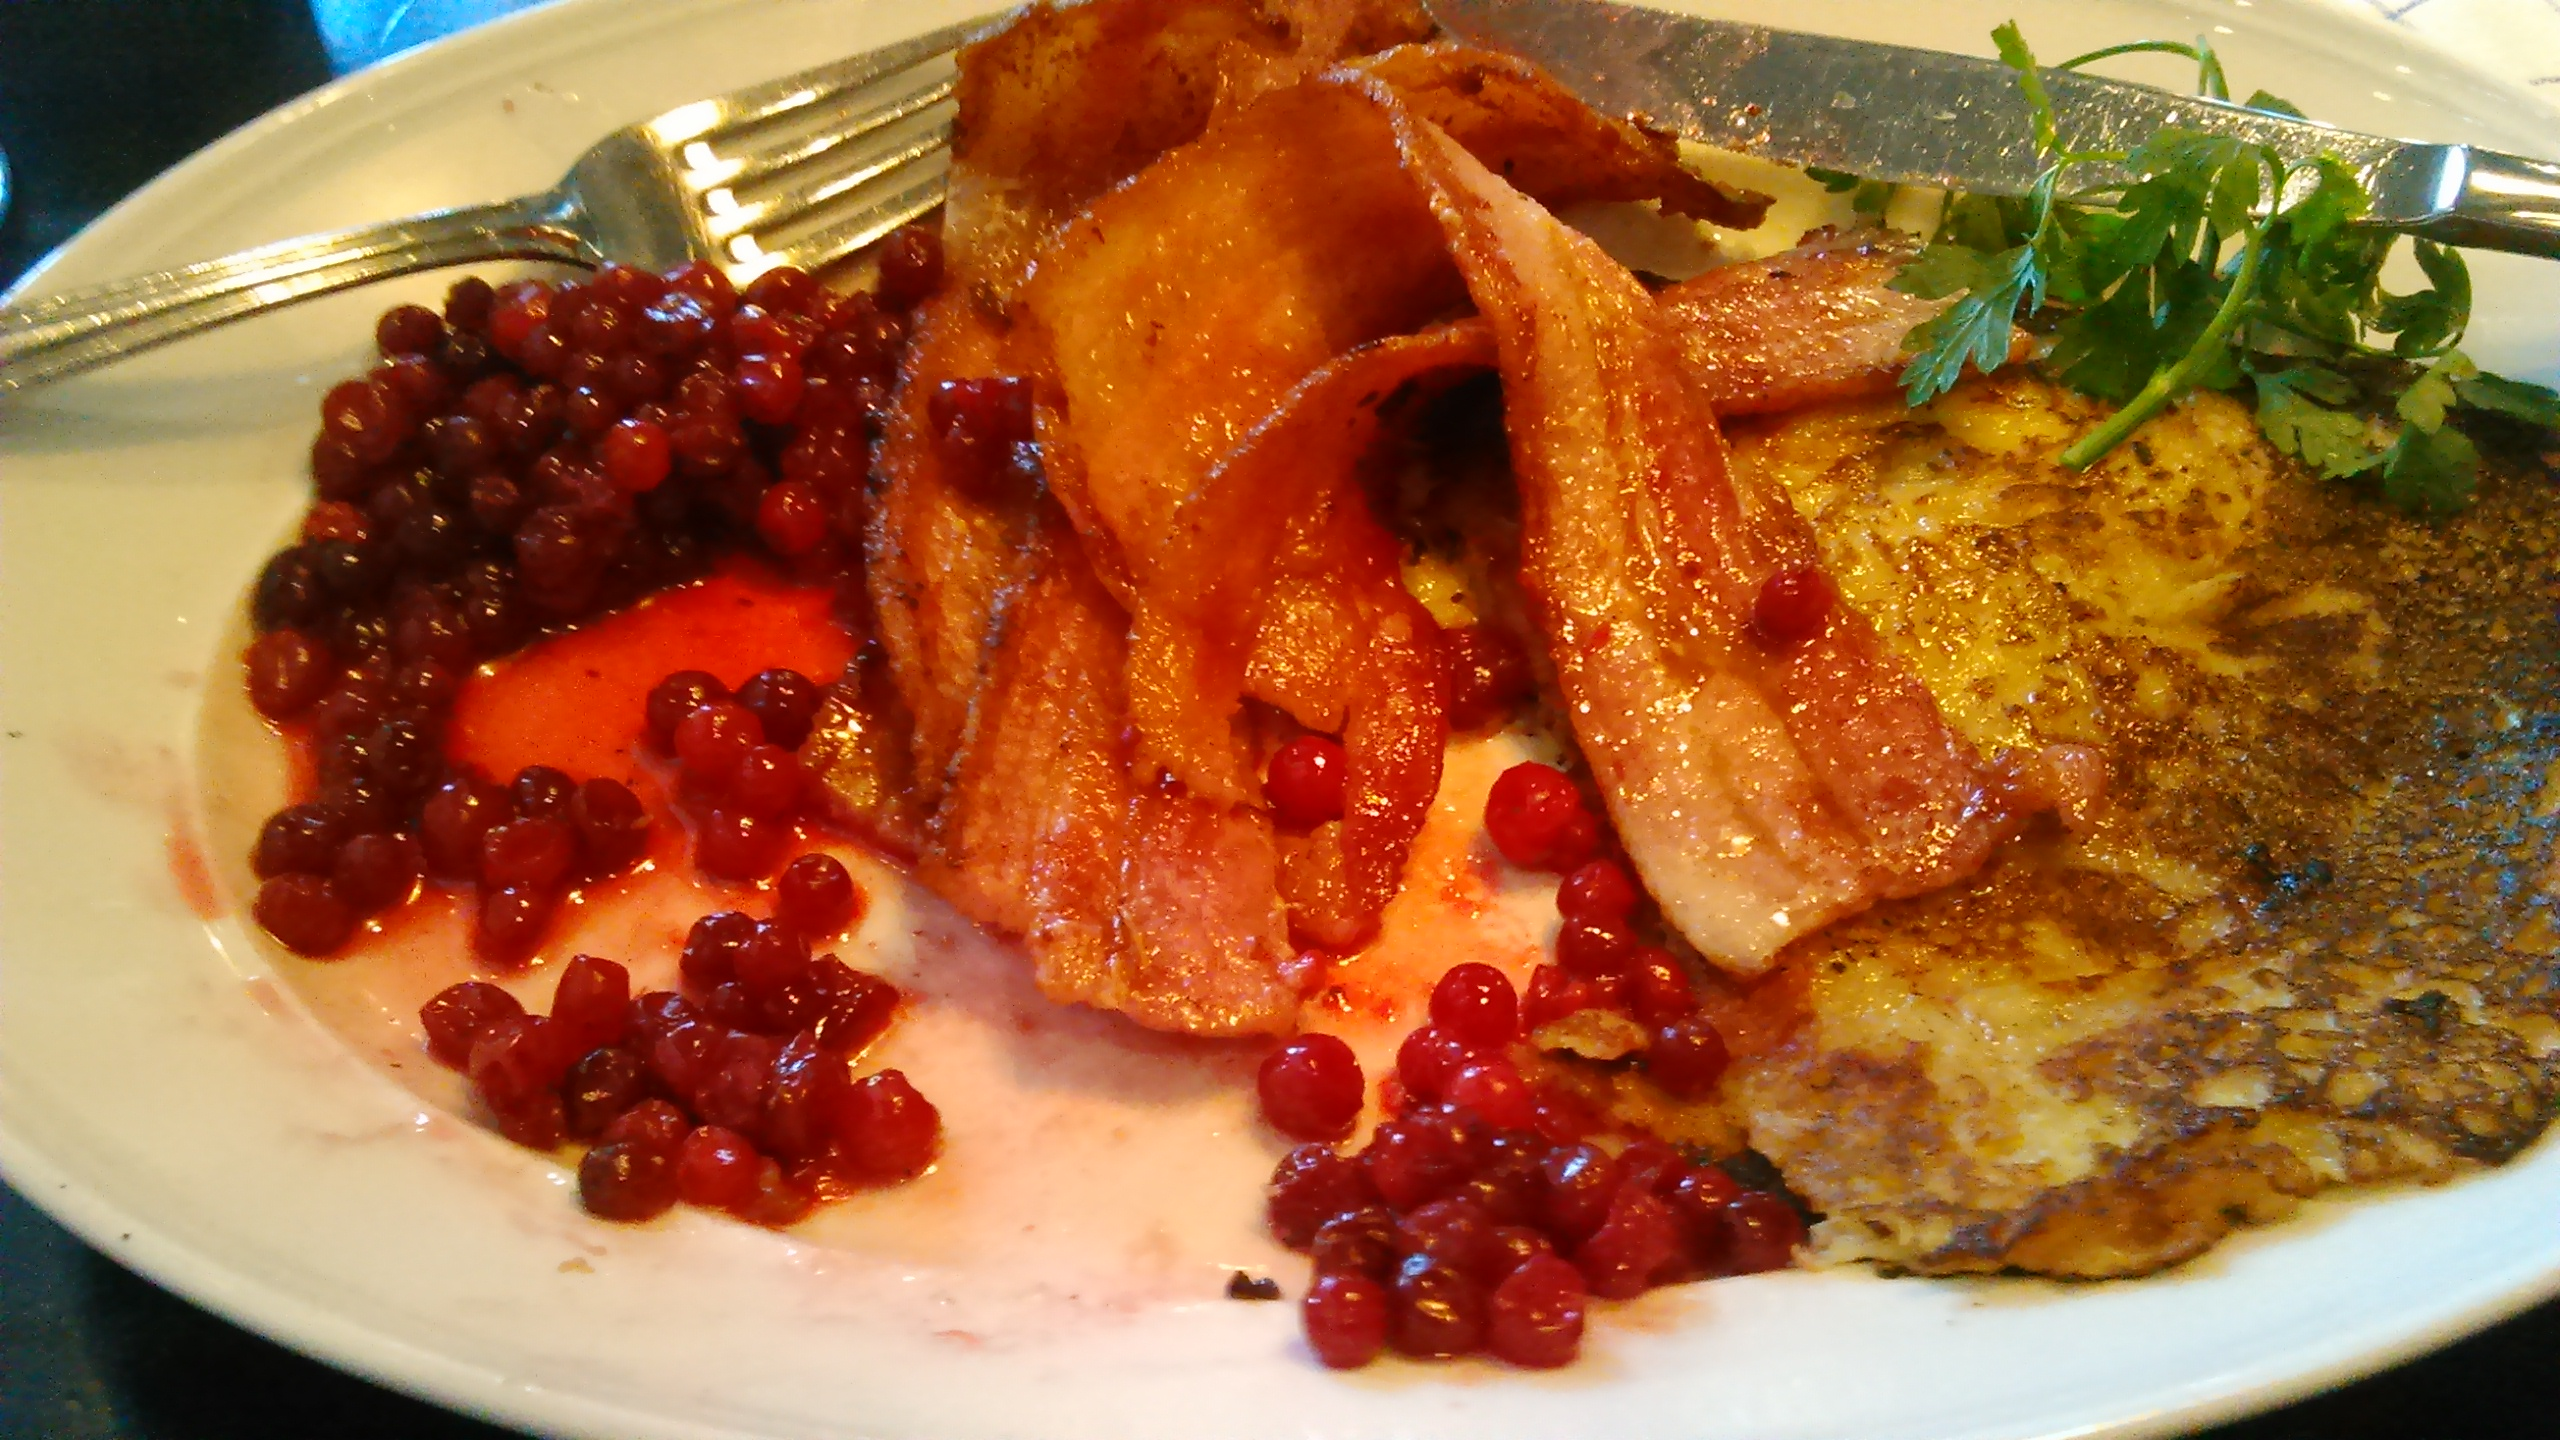 Potato pancakes with lingonberries and bacon